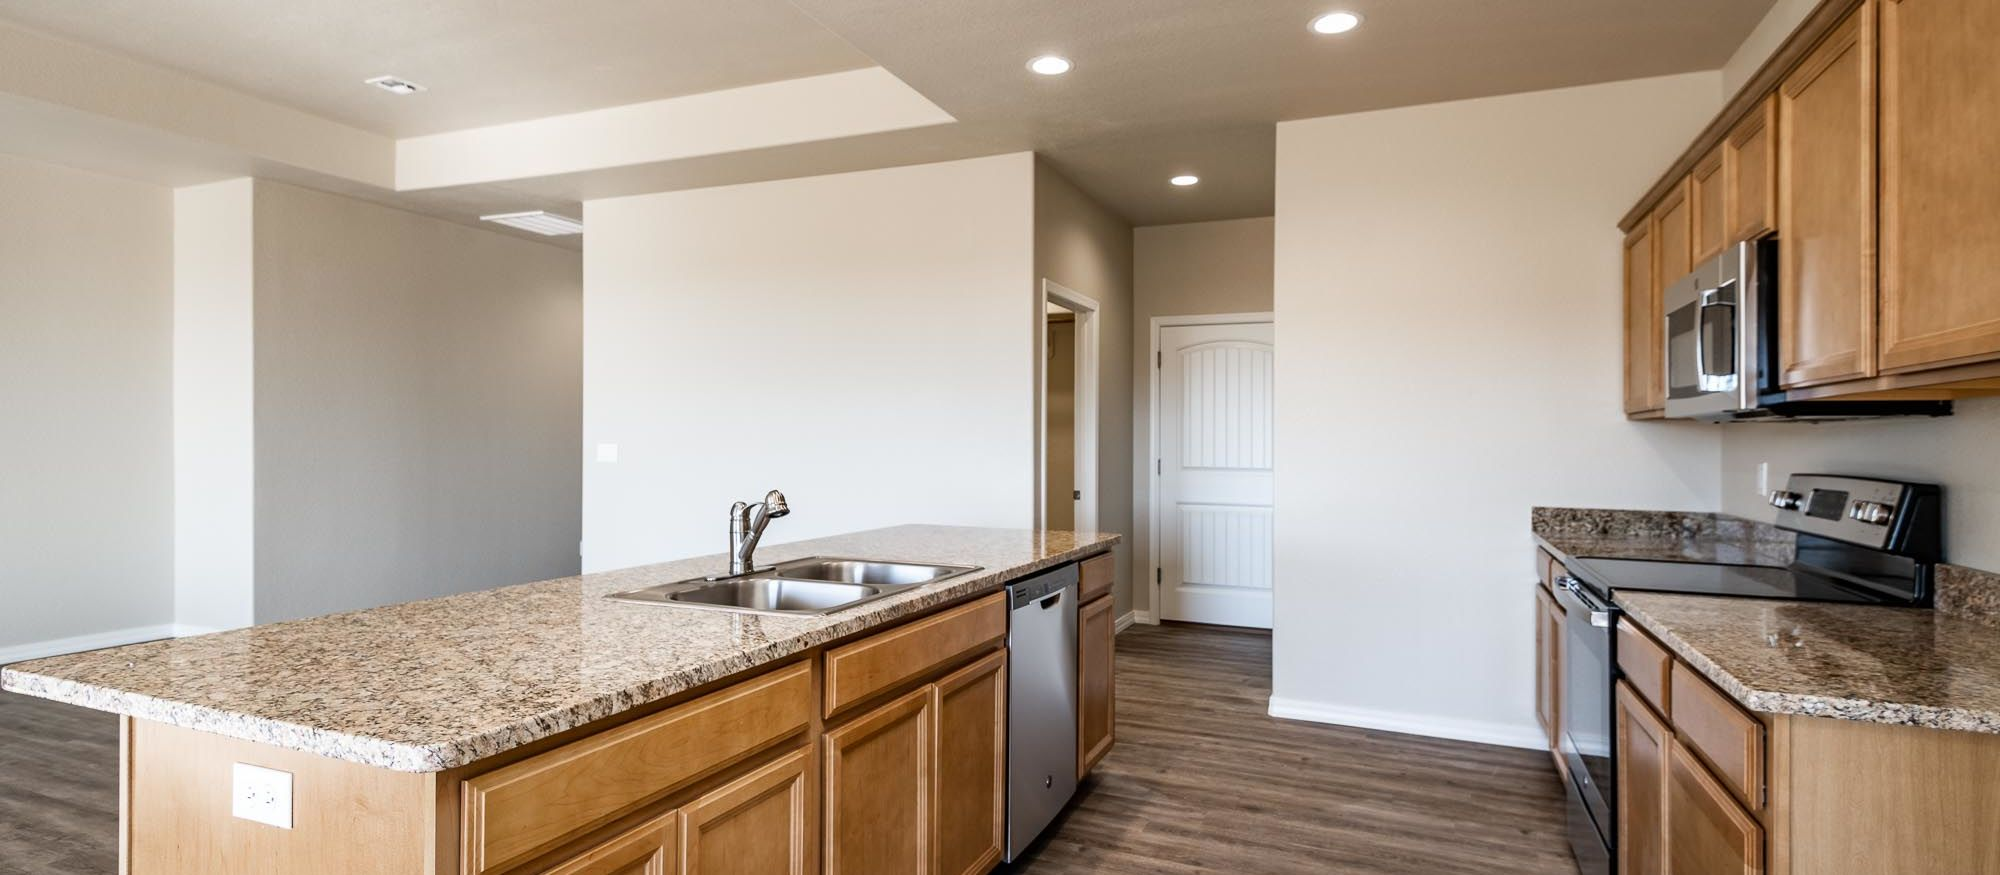 Kitchen featured in the Ironwood 1593 By Angle Homes in Kingman-Lake Havasu City, AZ